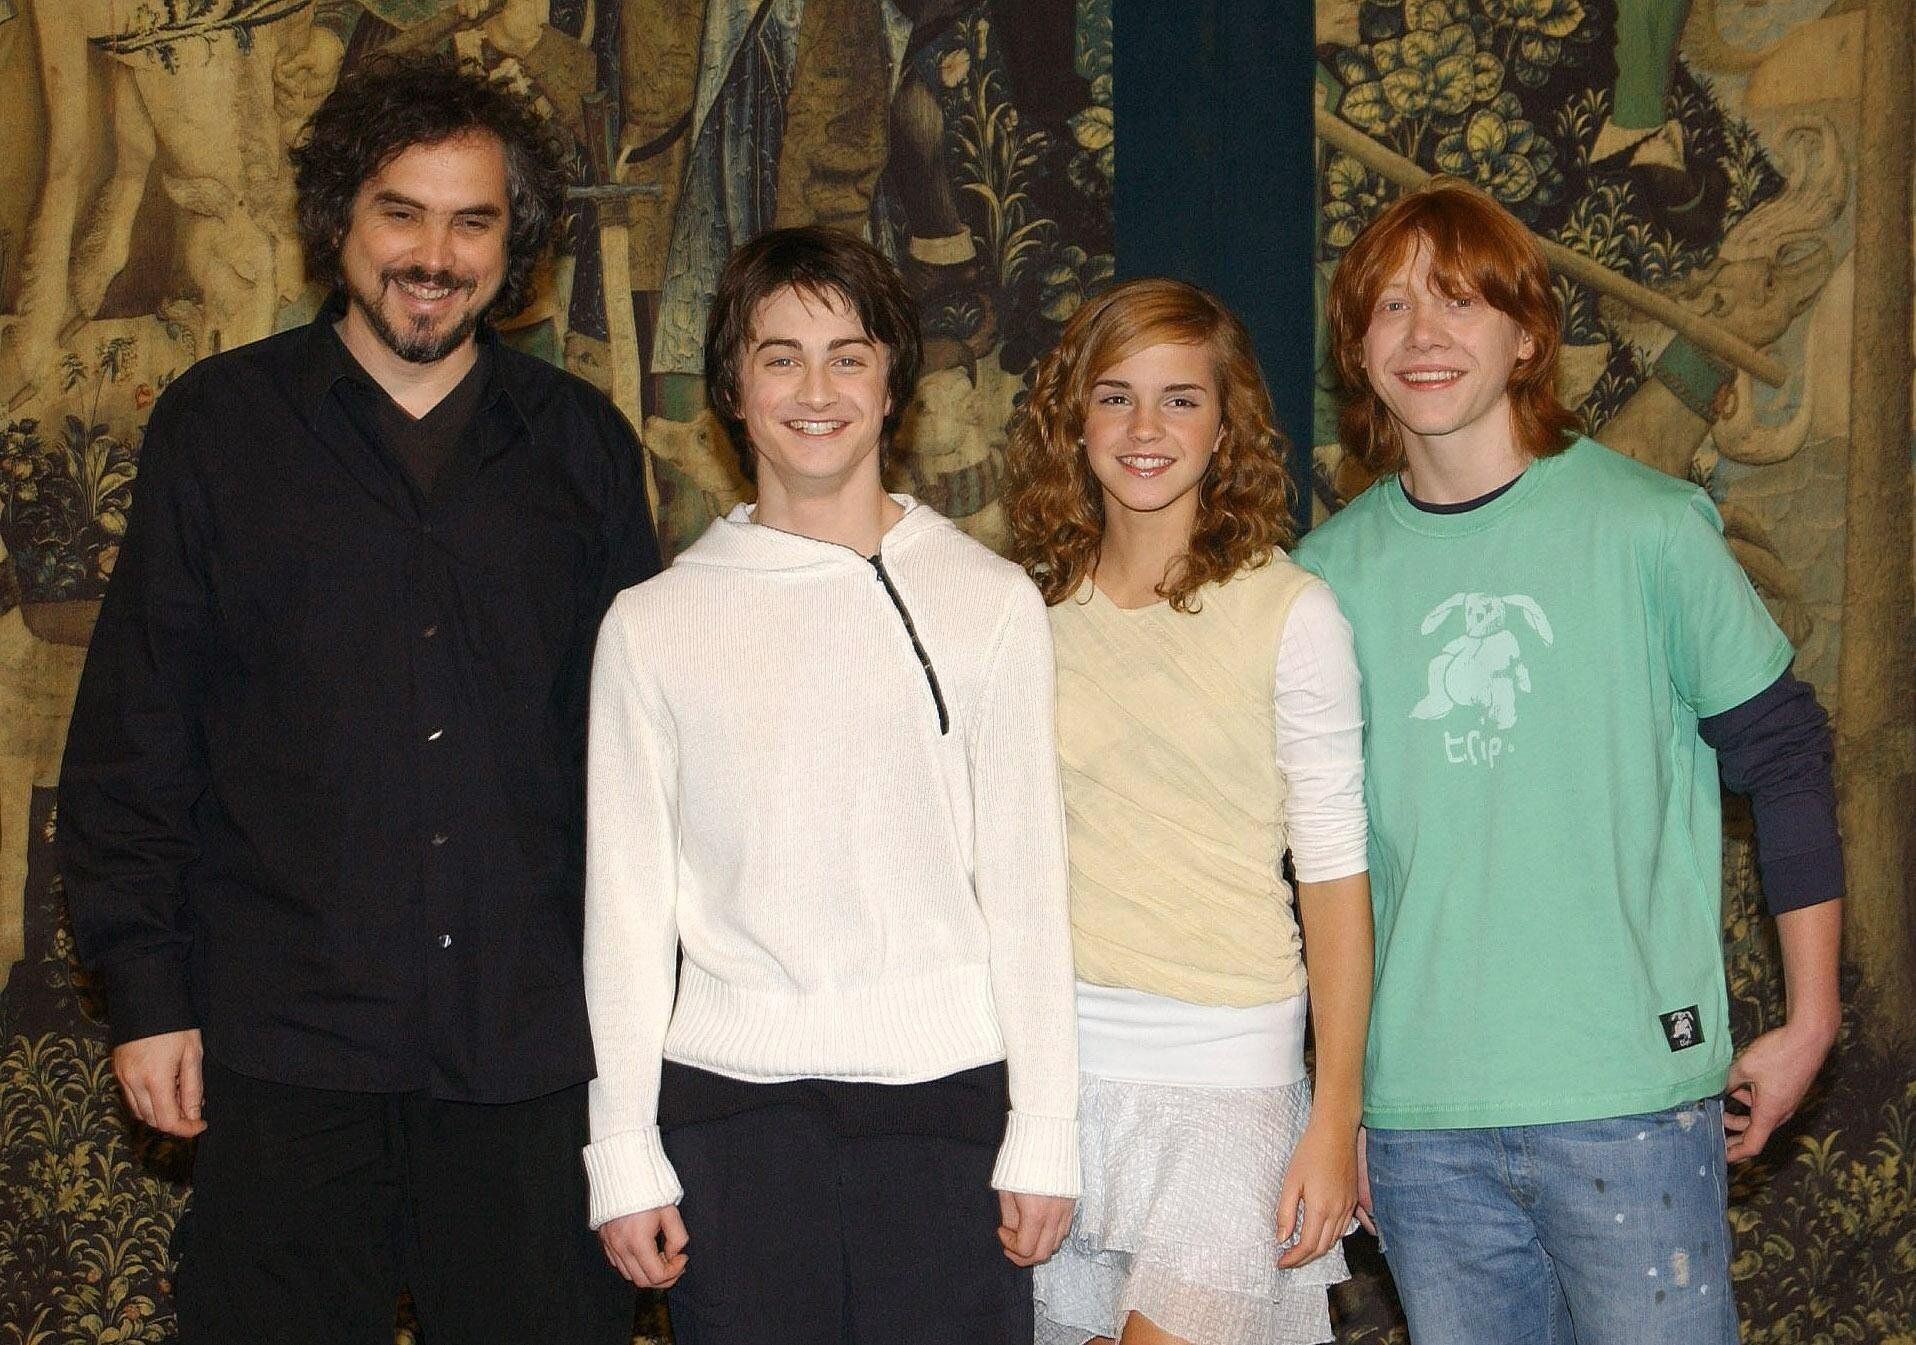 """Alfonso Cuarón, Daniel Radcliffe, Emma Watson and Rupert Grint at the London premiere of """"Harry Potter and the Prisoner of Azkaban,"""" released in 2004."""